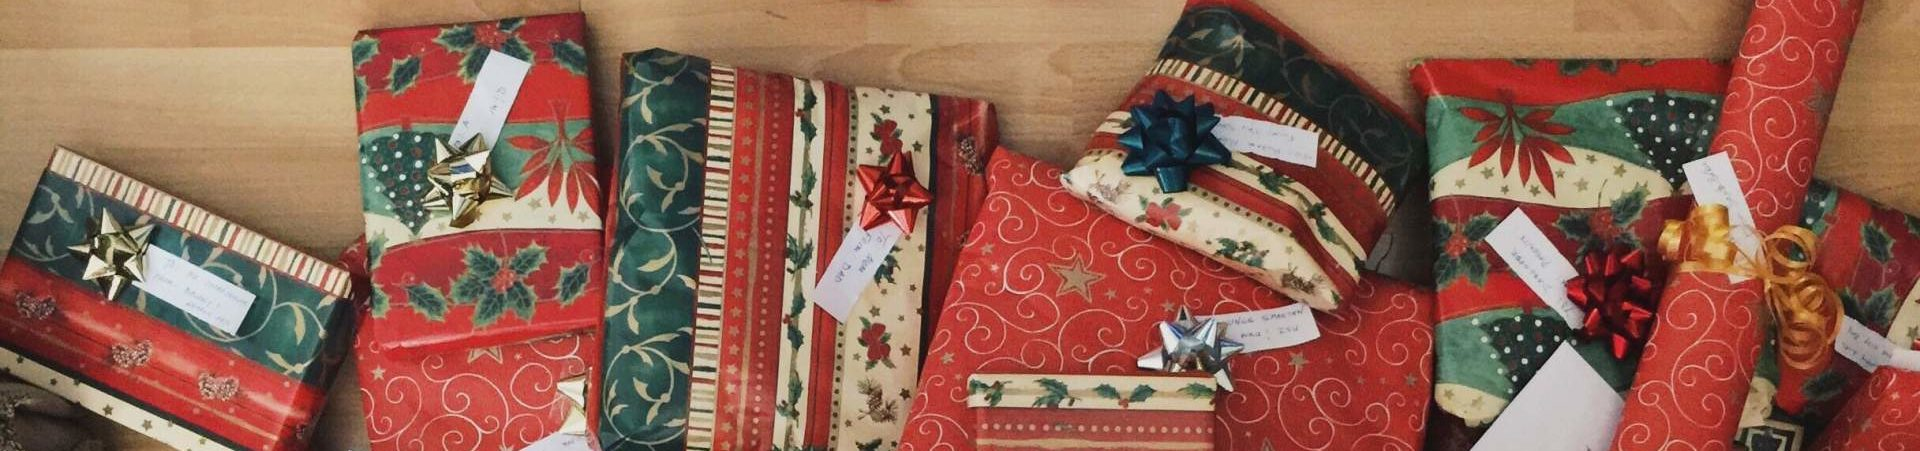 7 Eco-friendly Alternatives to Toys for Christmas